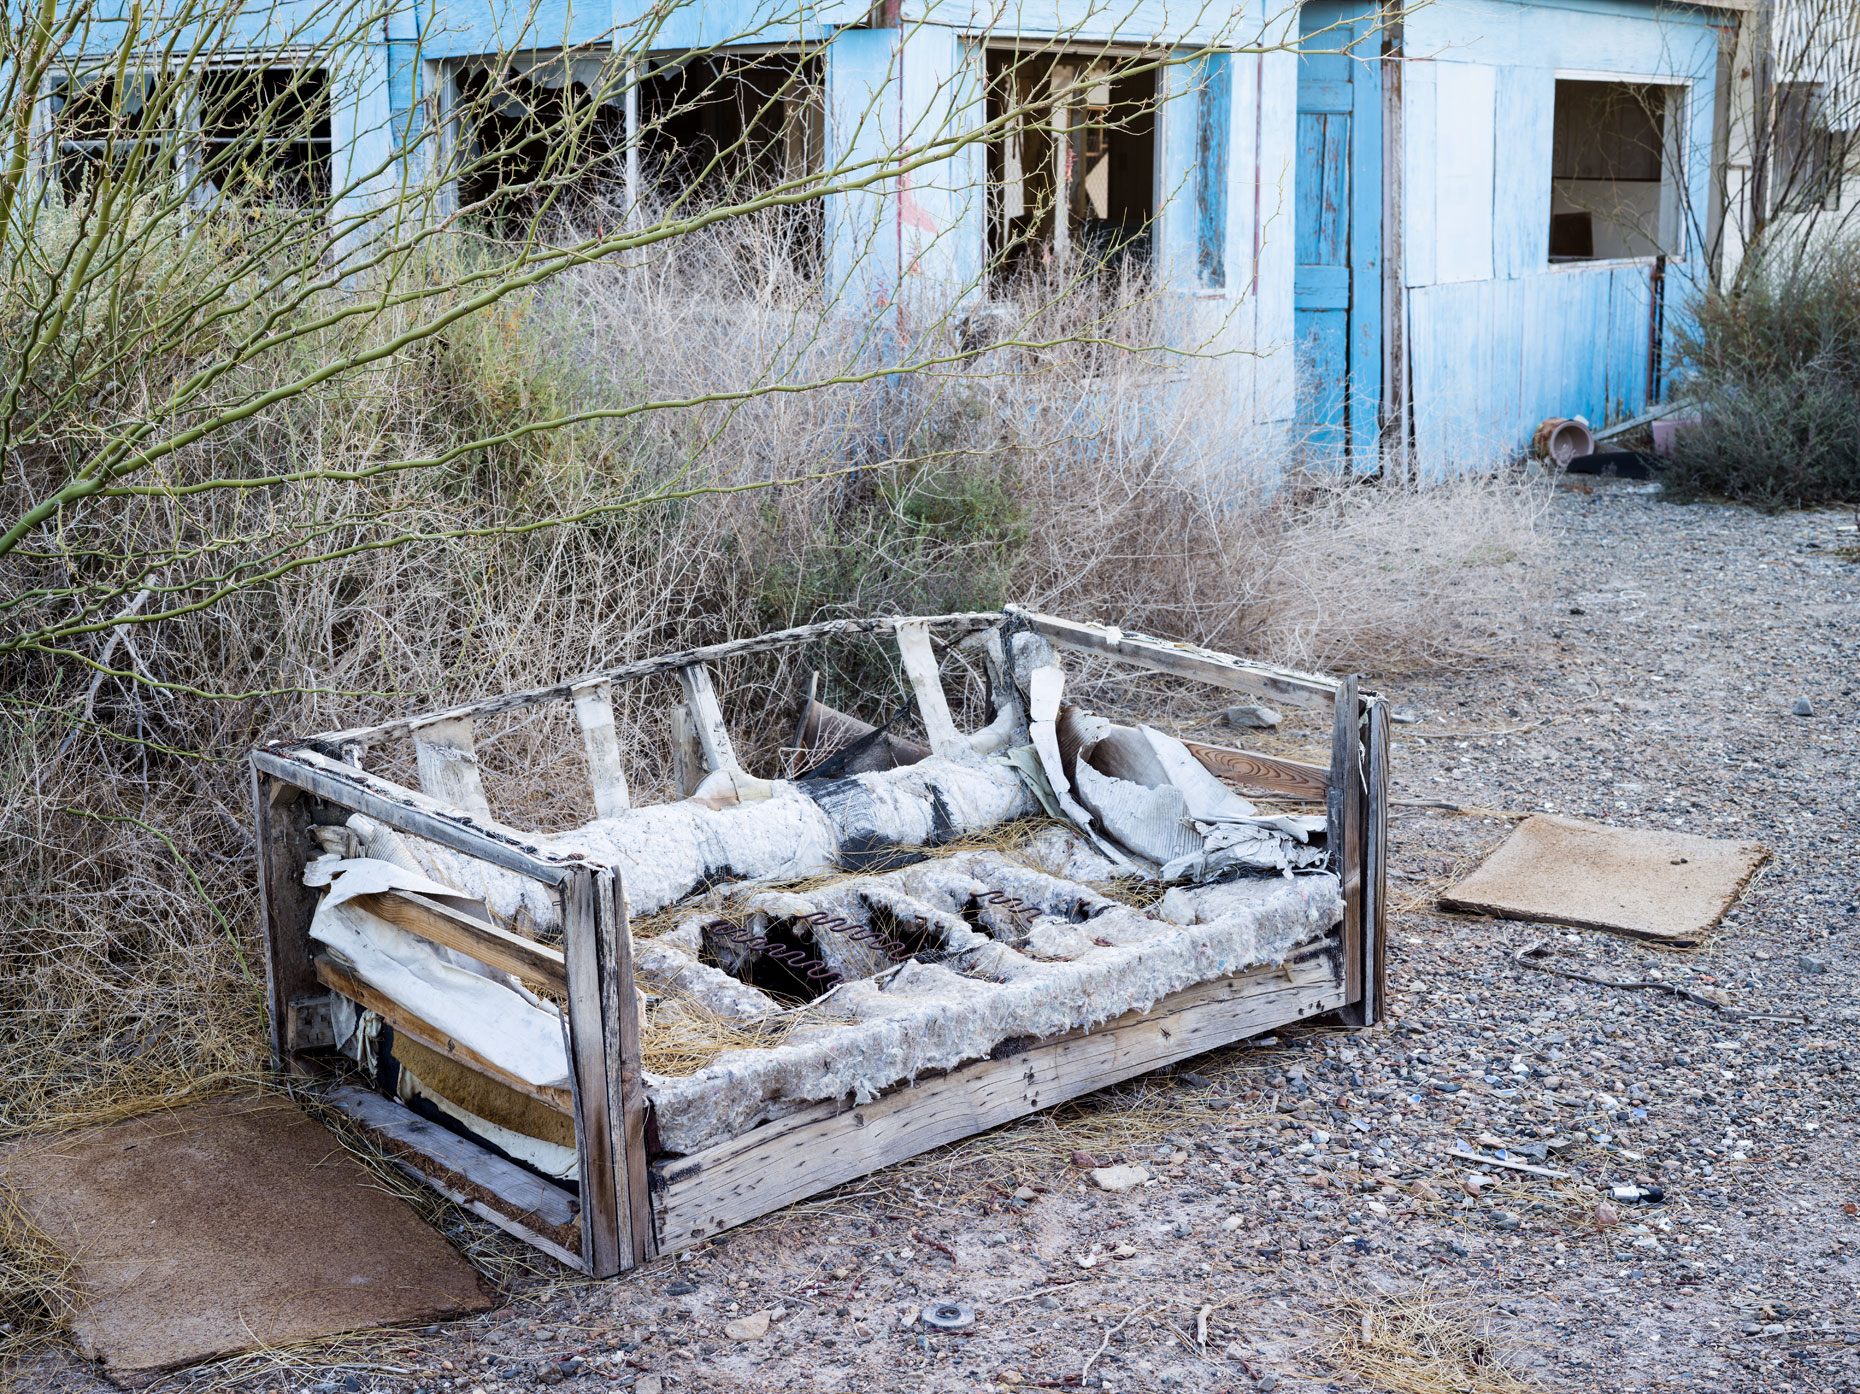 Bombay Beach weathered couch outside of an abandoned building